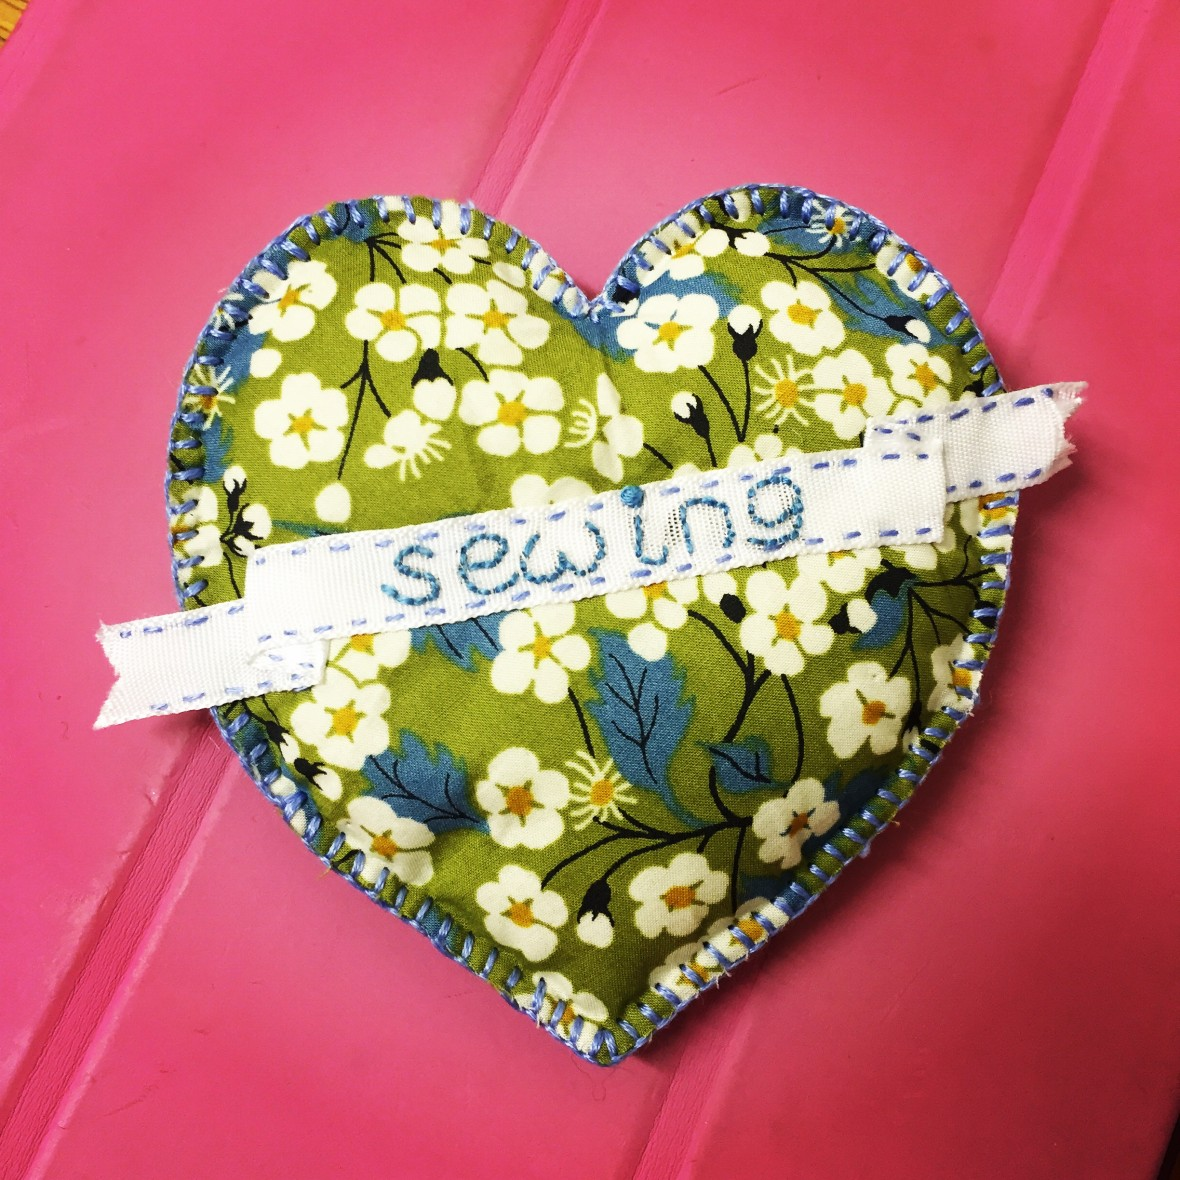 Soulful Sewing - Hand Sewing Evenings at Boston Tea Party